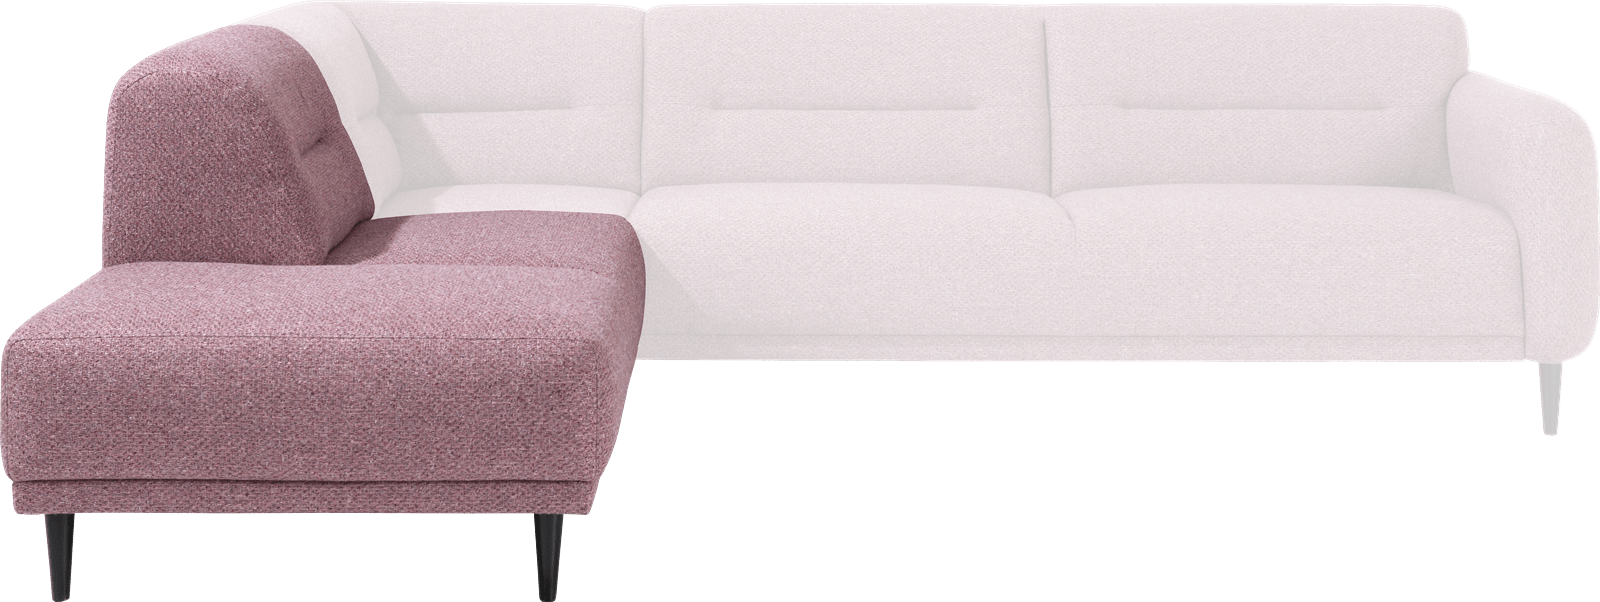 XOOON - Halifax - Skandinavisches Design - Sofas - ottomane klein links